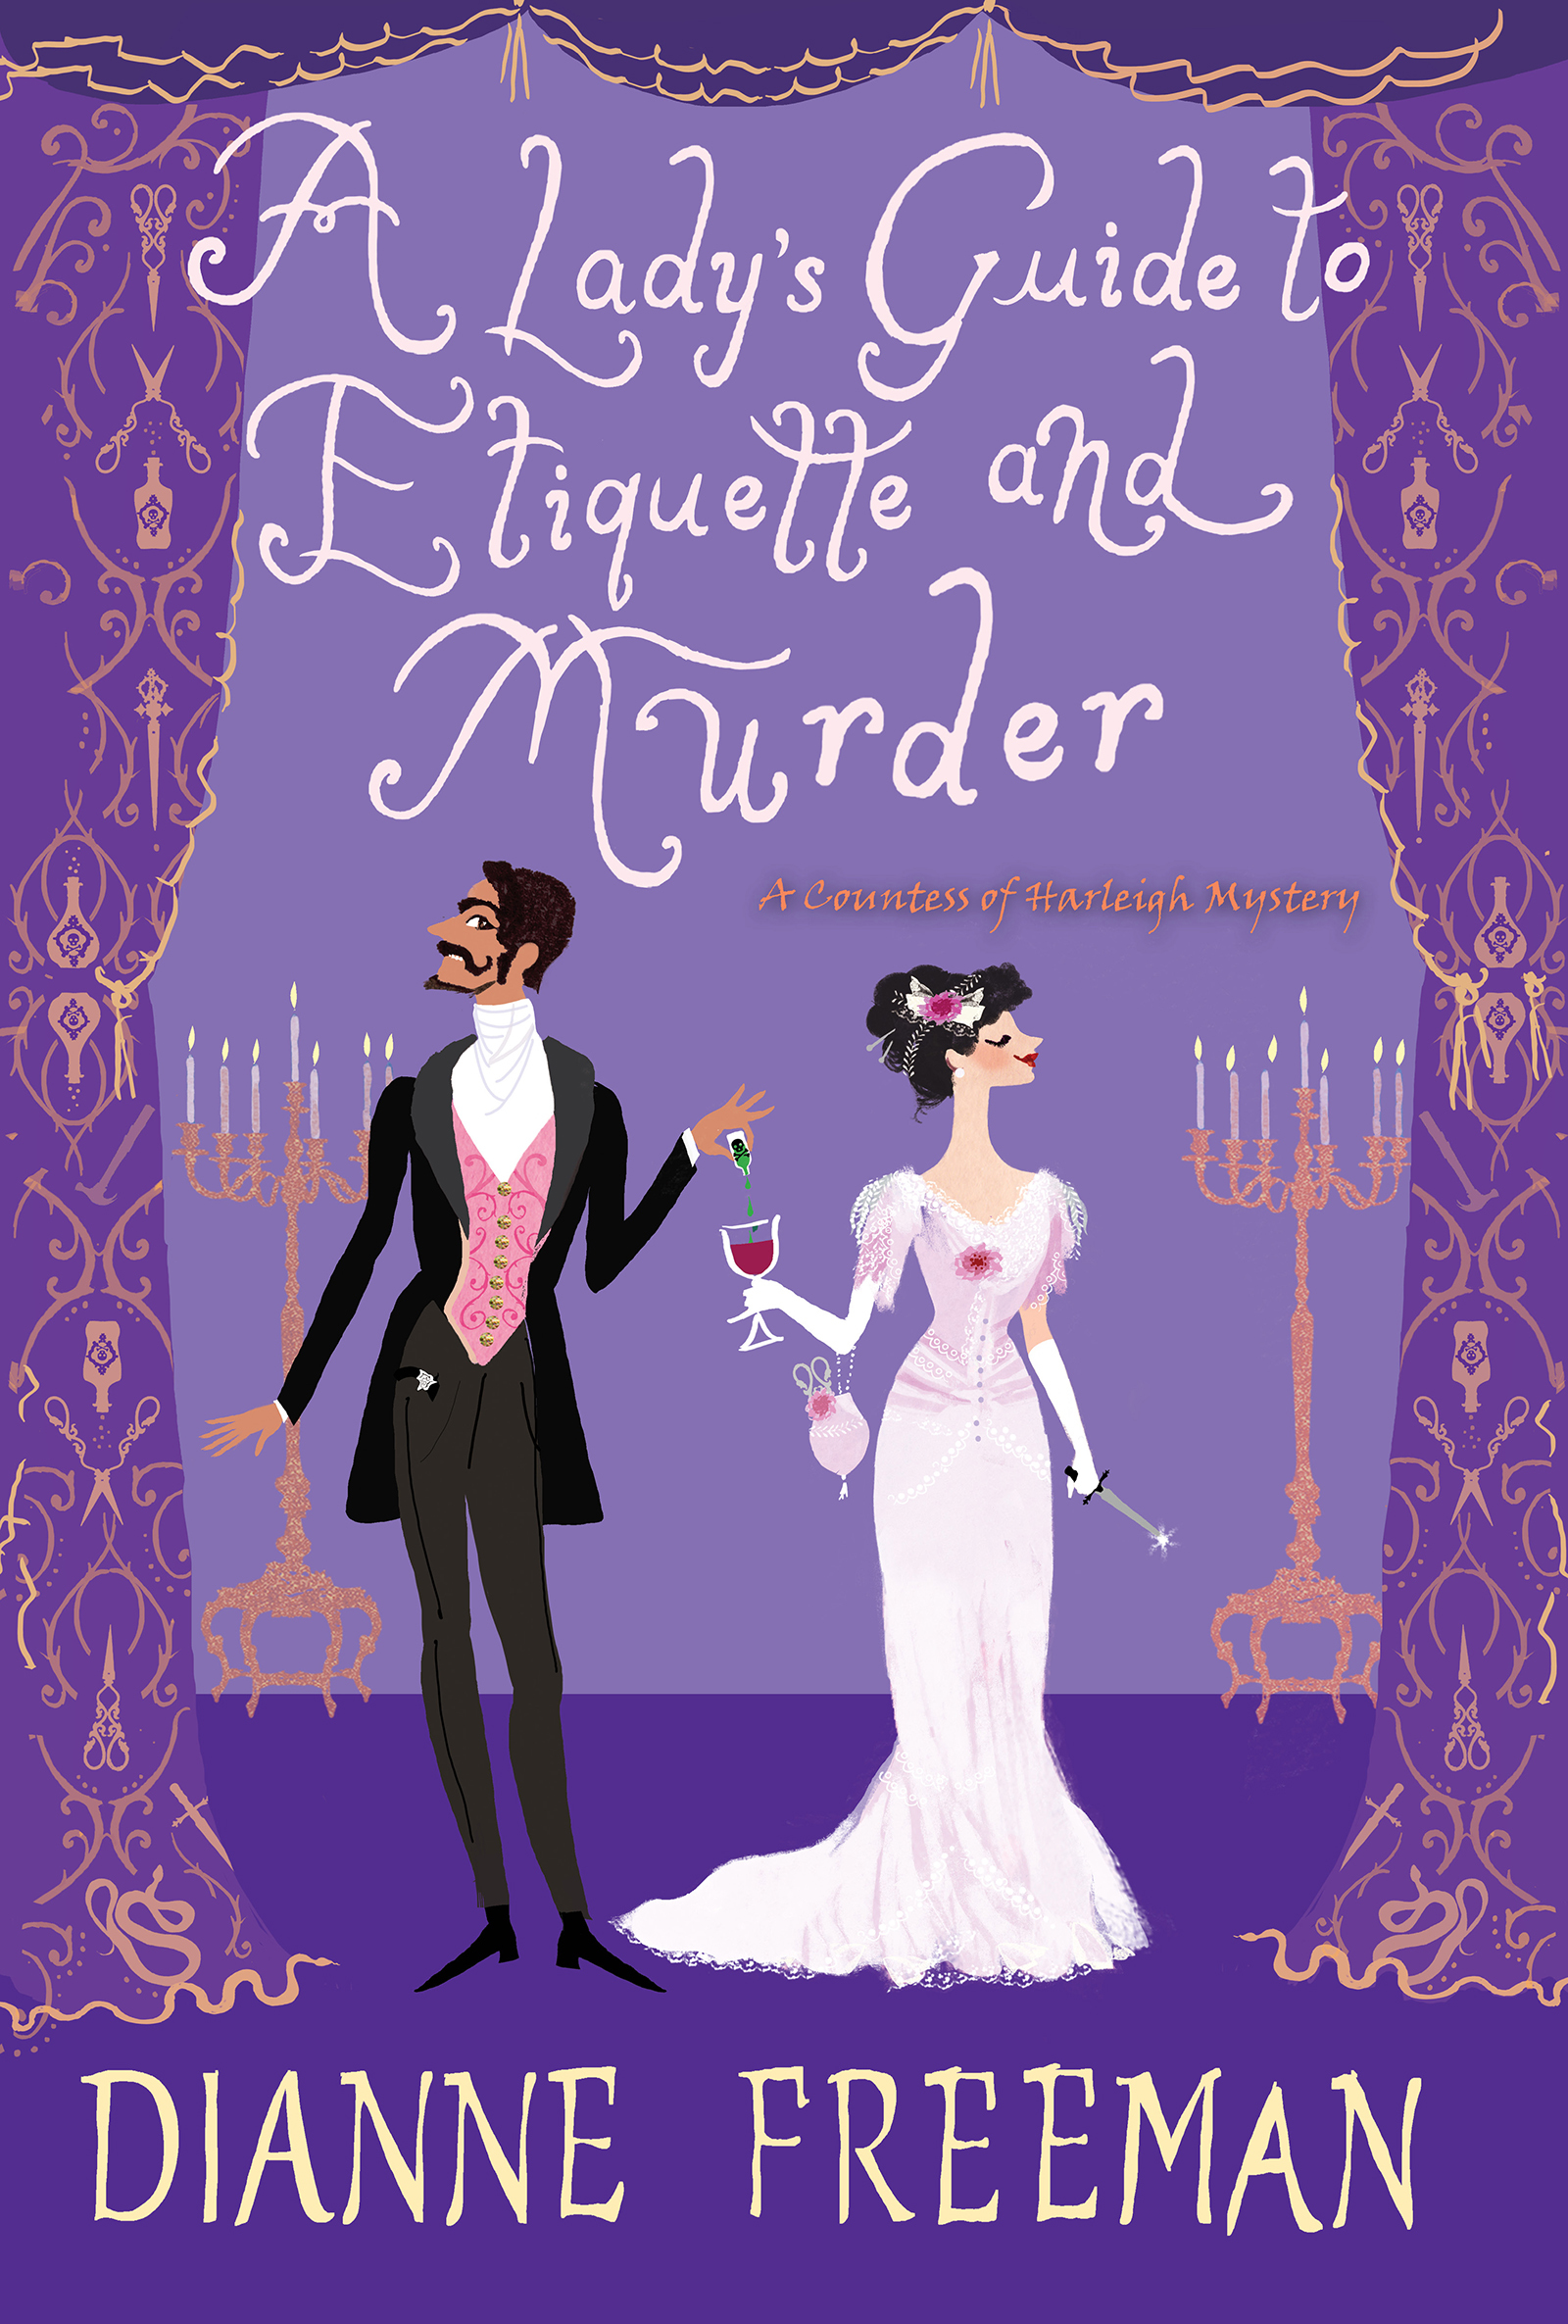 A Lady's Guide to Etiquette and Murder by Dianne Freeman